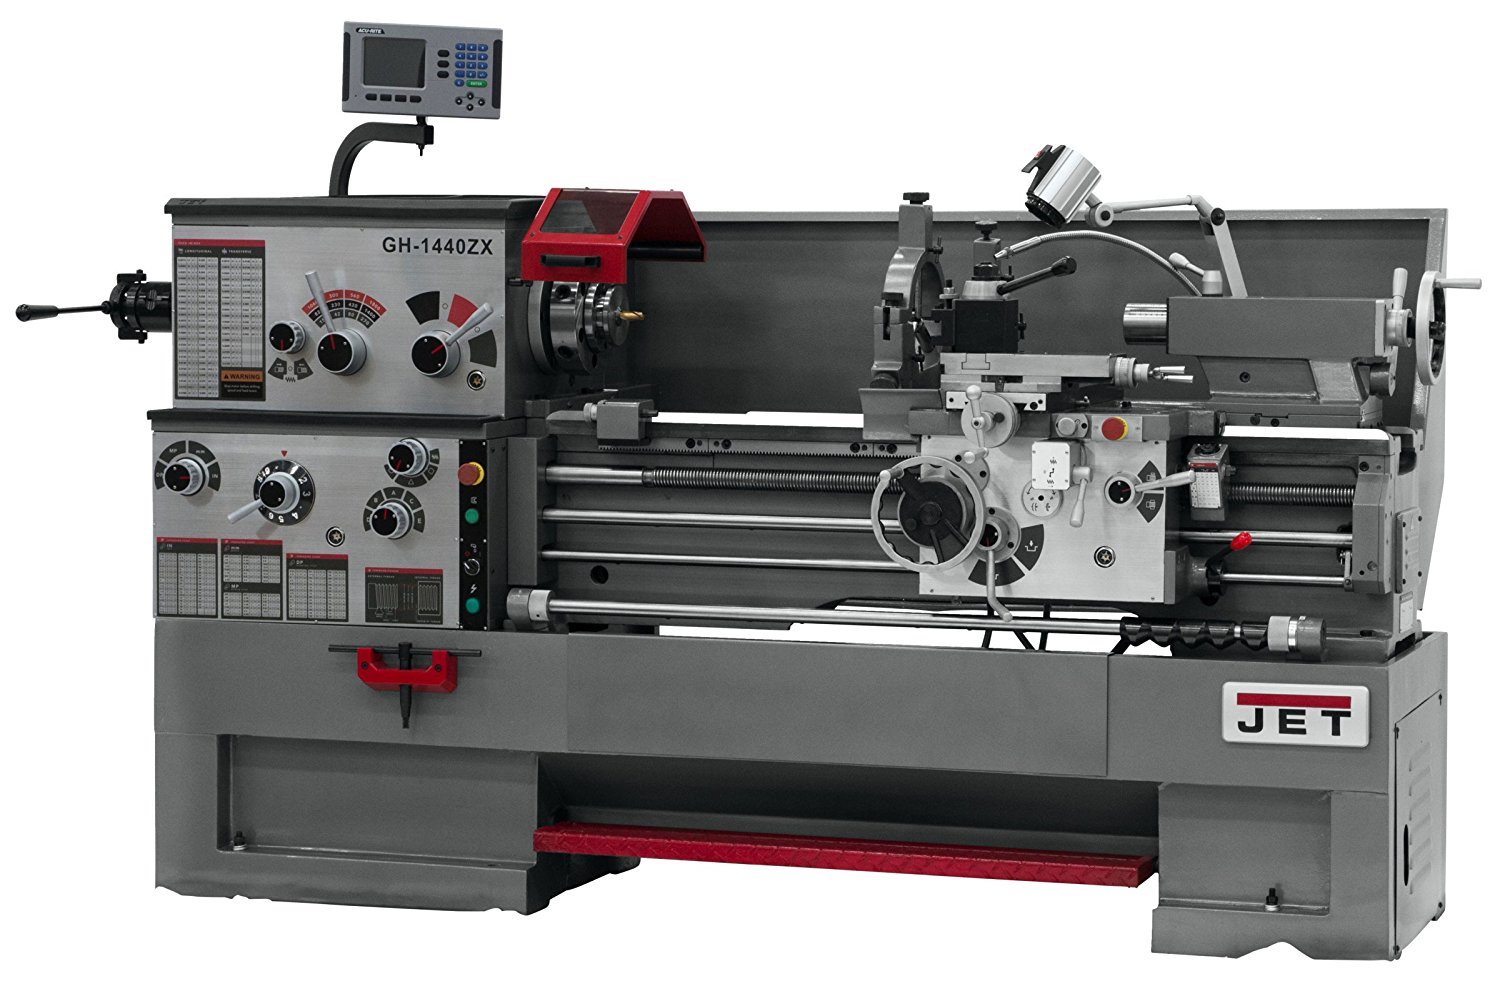 JET GH-1440ZX Lathe with ACU-RITE 200S DRO and Taper Attachment Installed